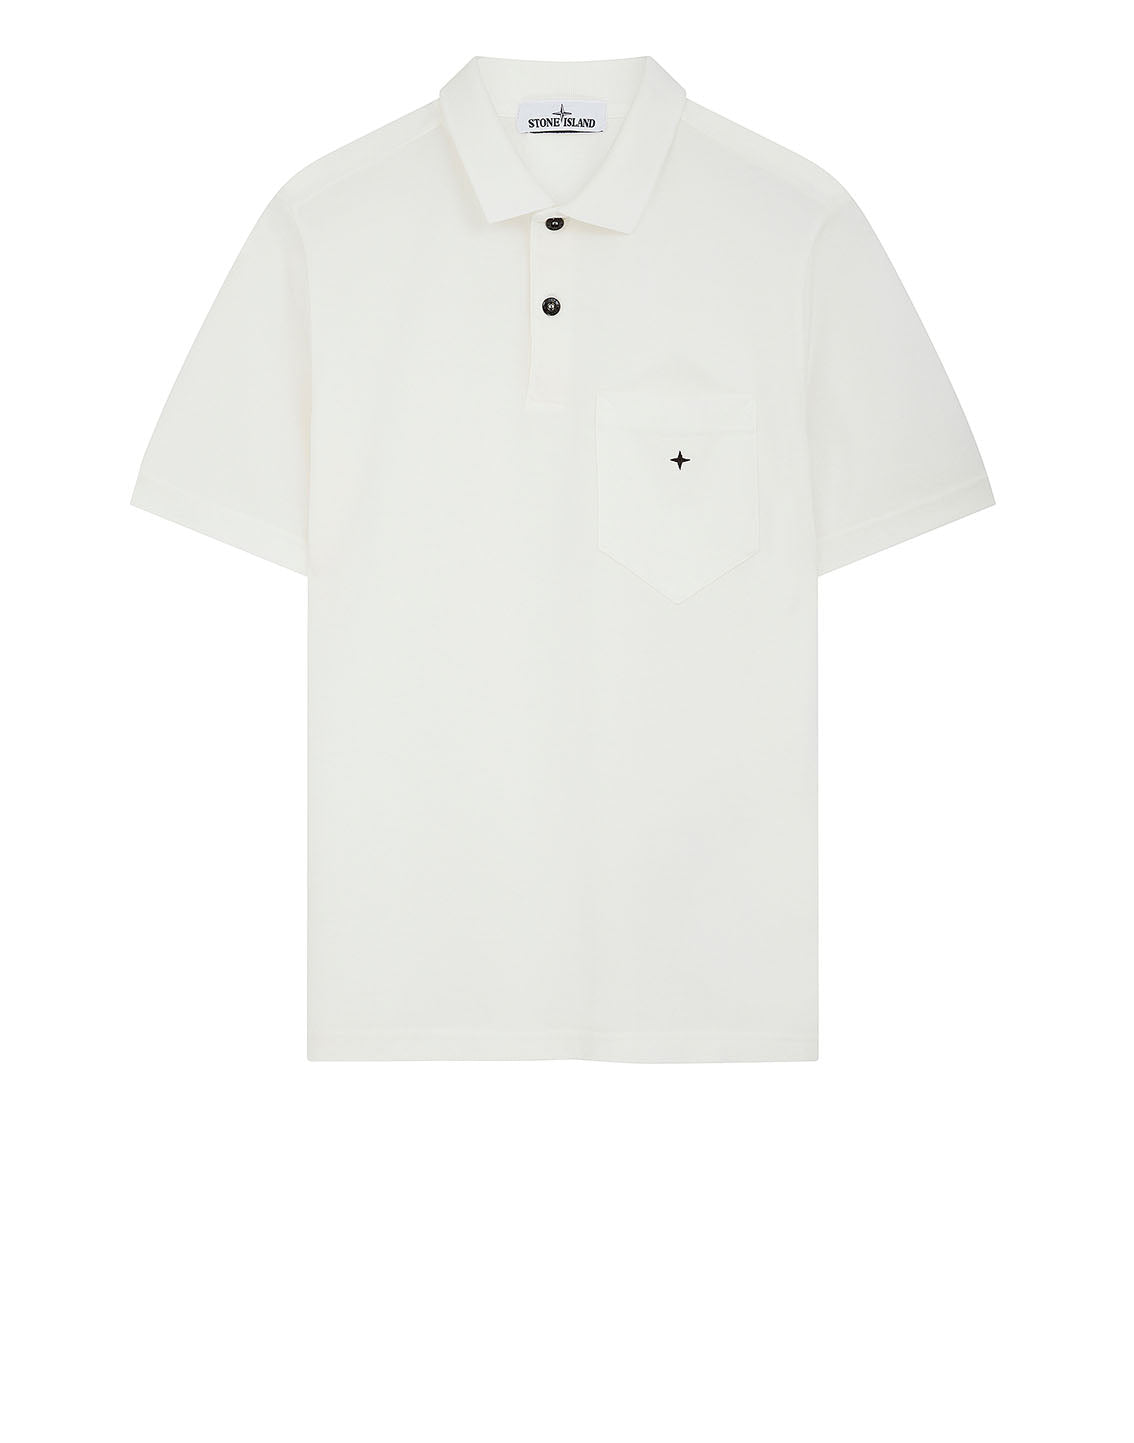 21212 Polo Shirt in Natural